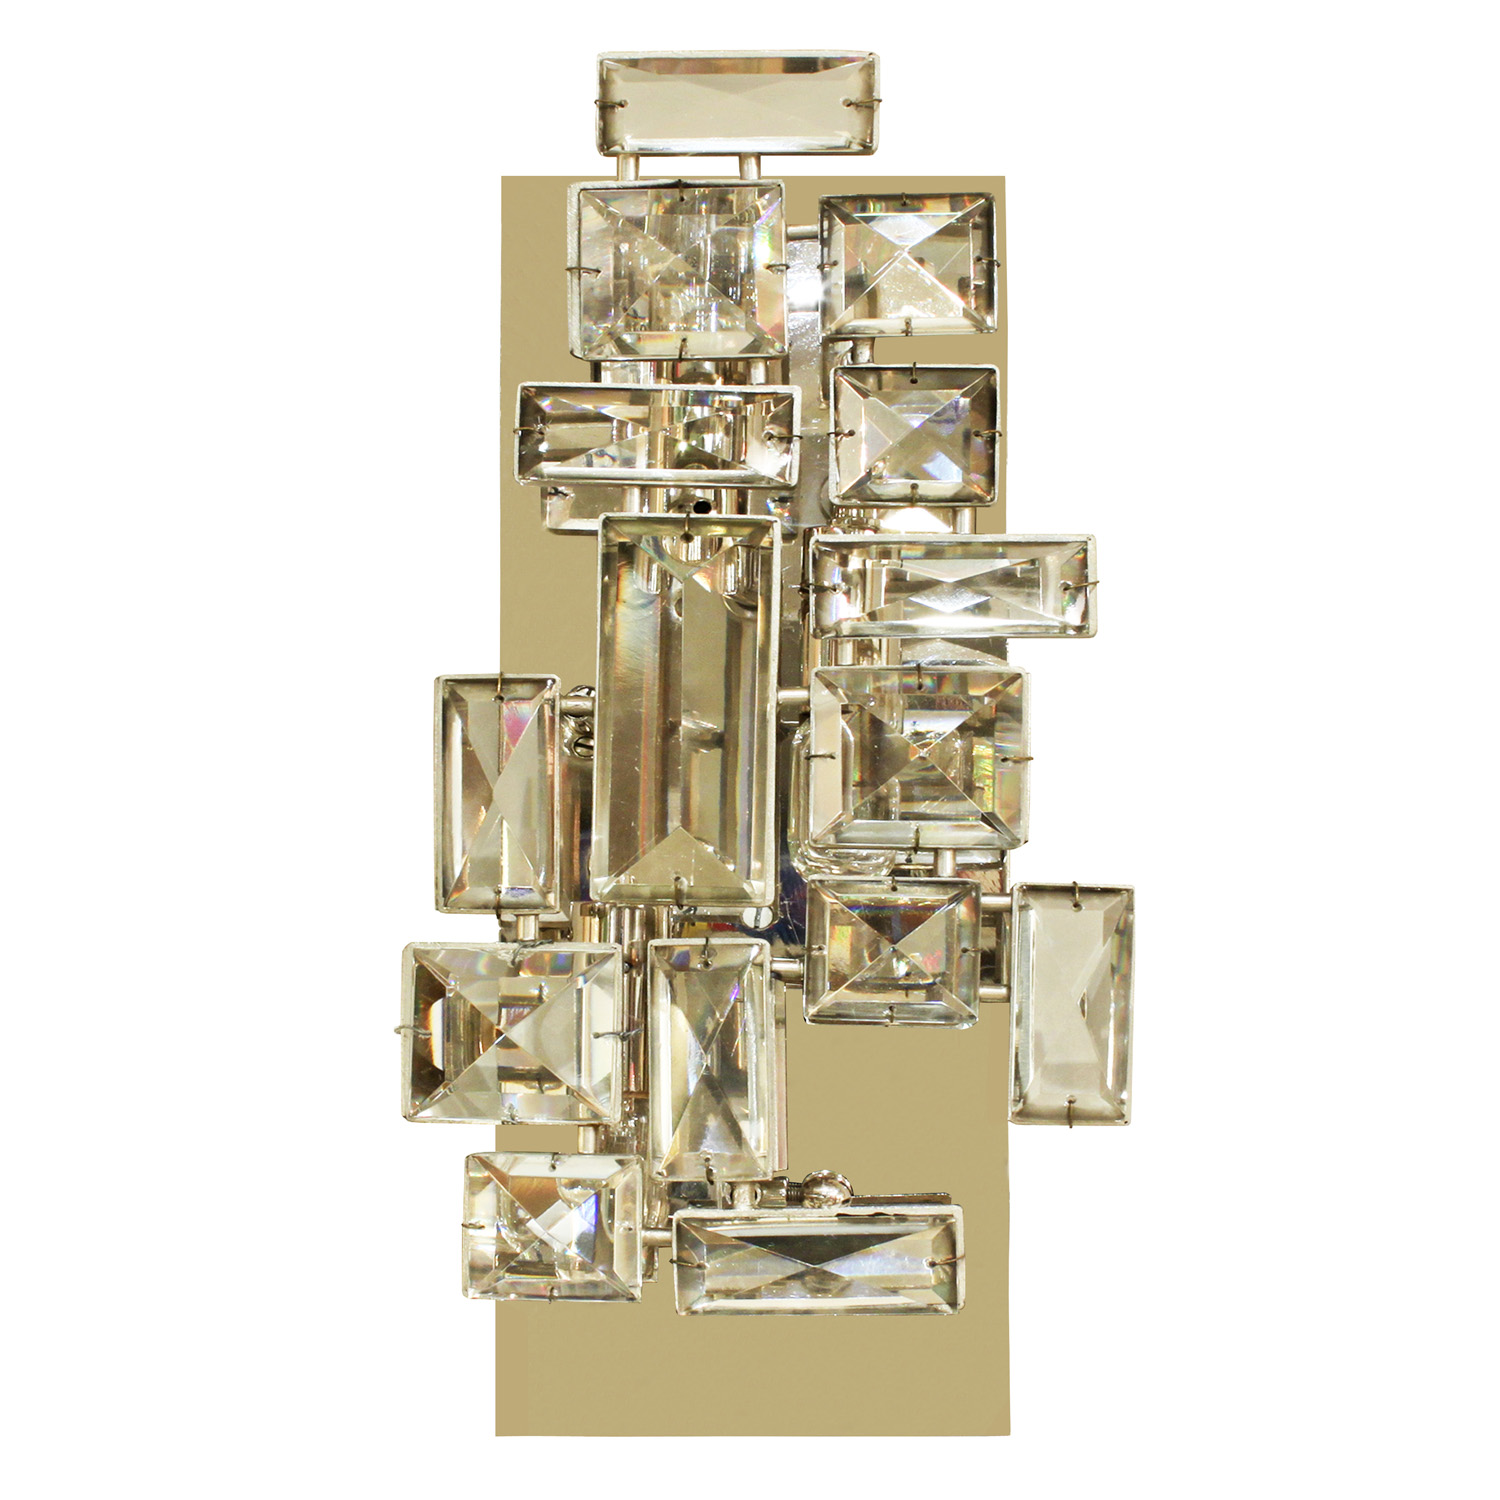 Lobmeyr 65 sml faceted crystals sconce29 hires main.jpg